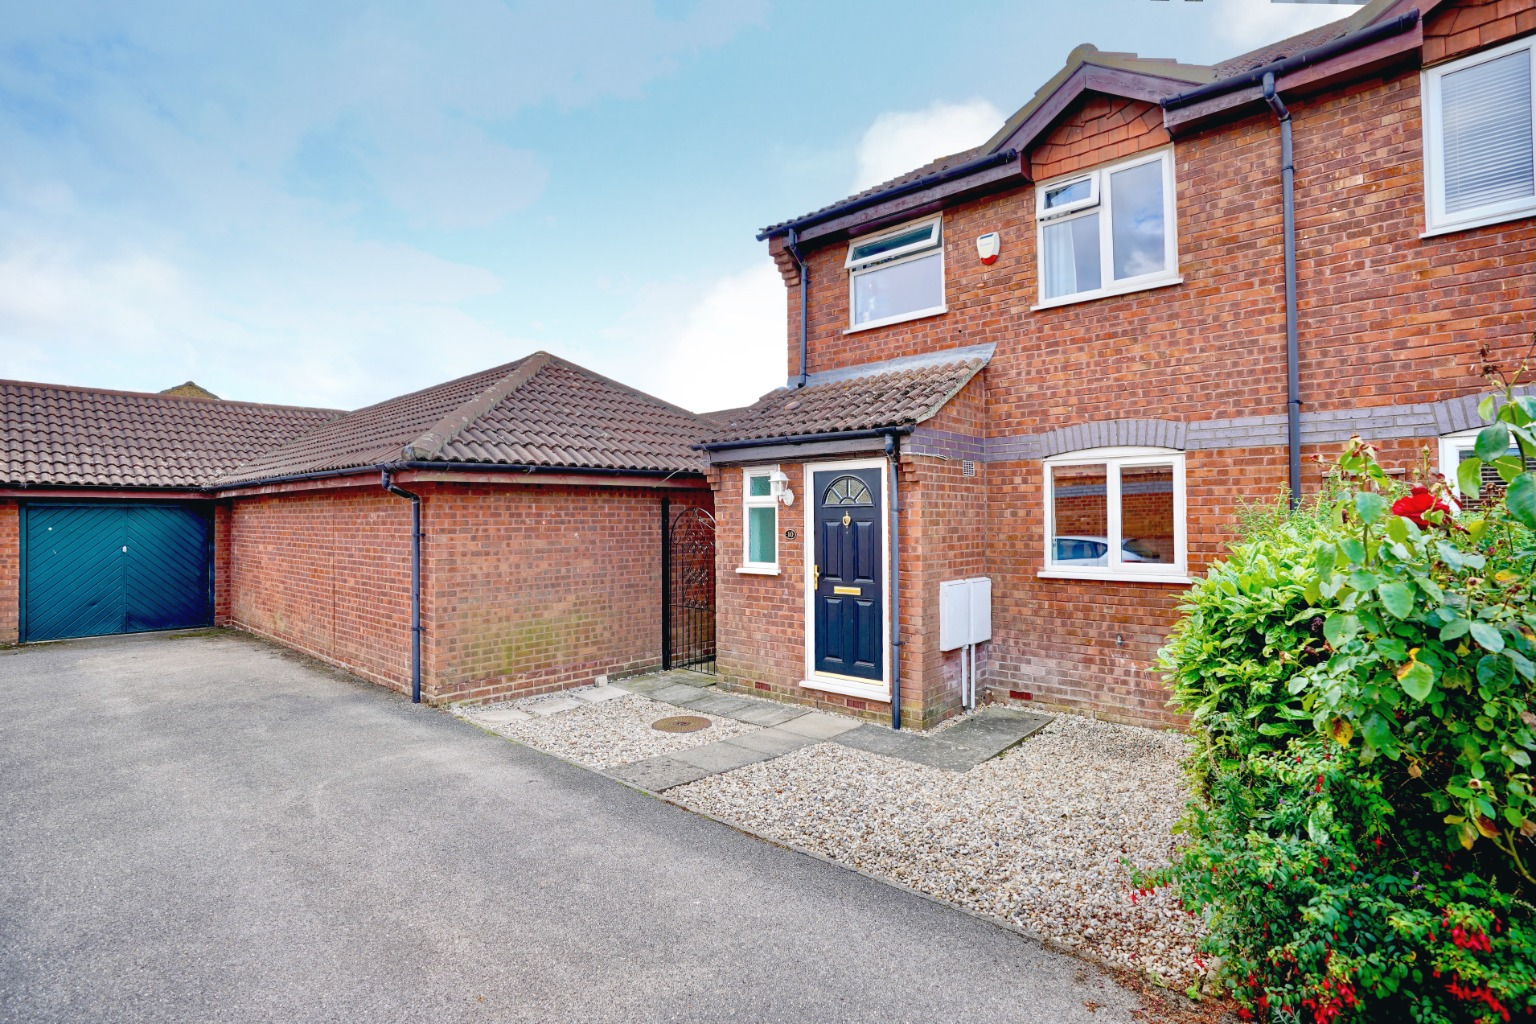 3 bed  for sale in Carisbrooke Way, St. Neots, PE19